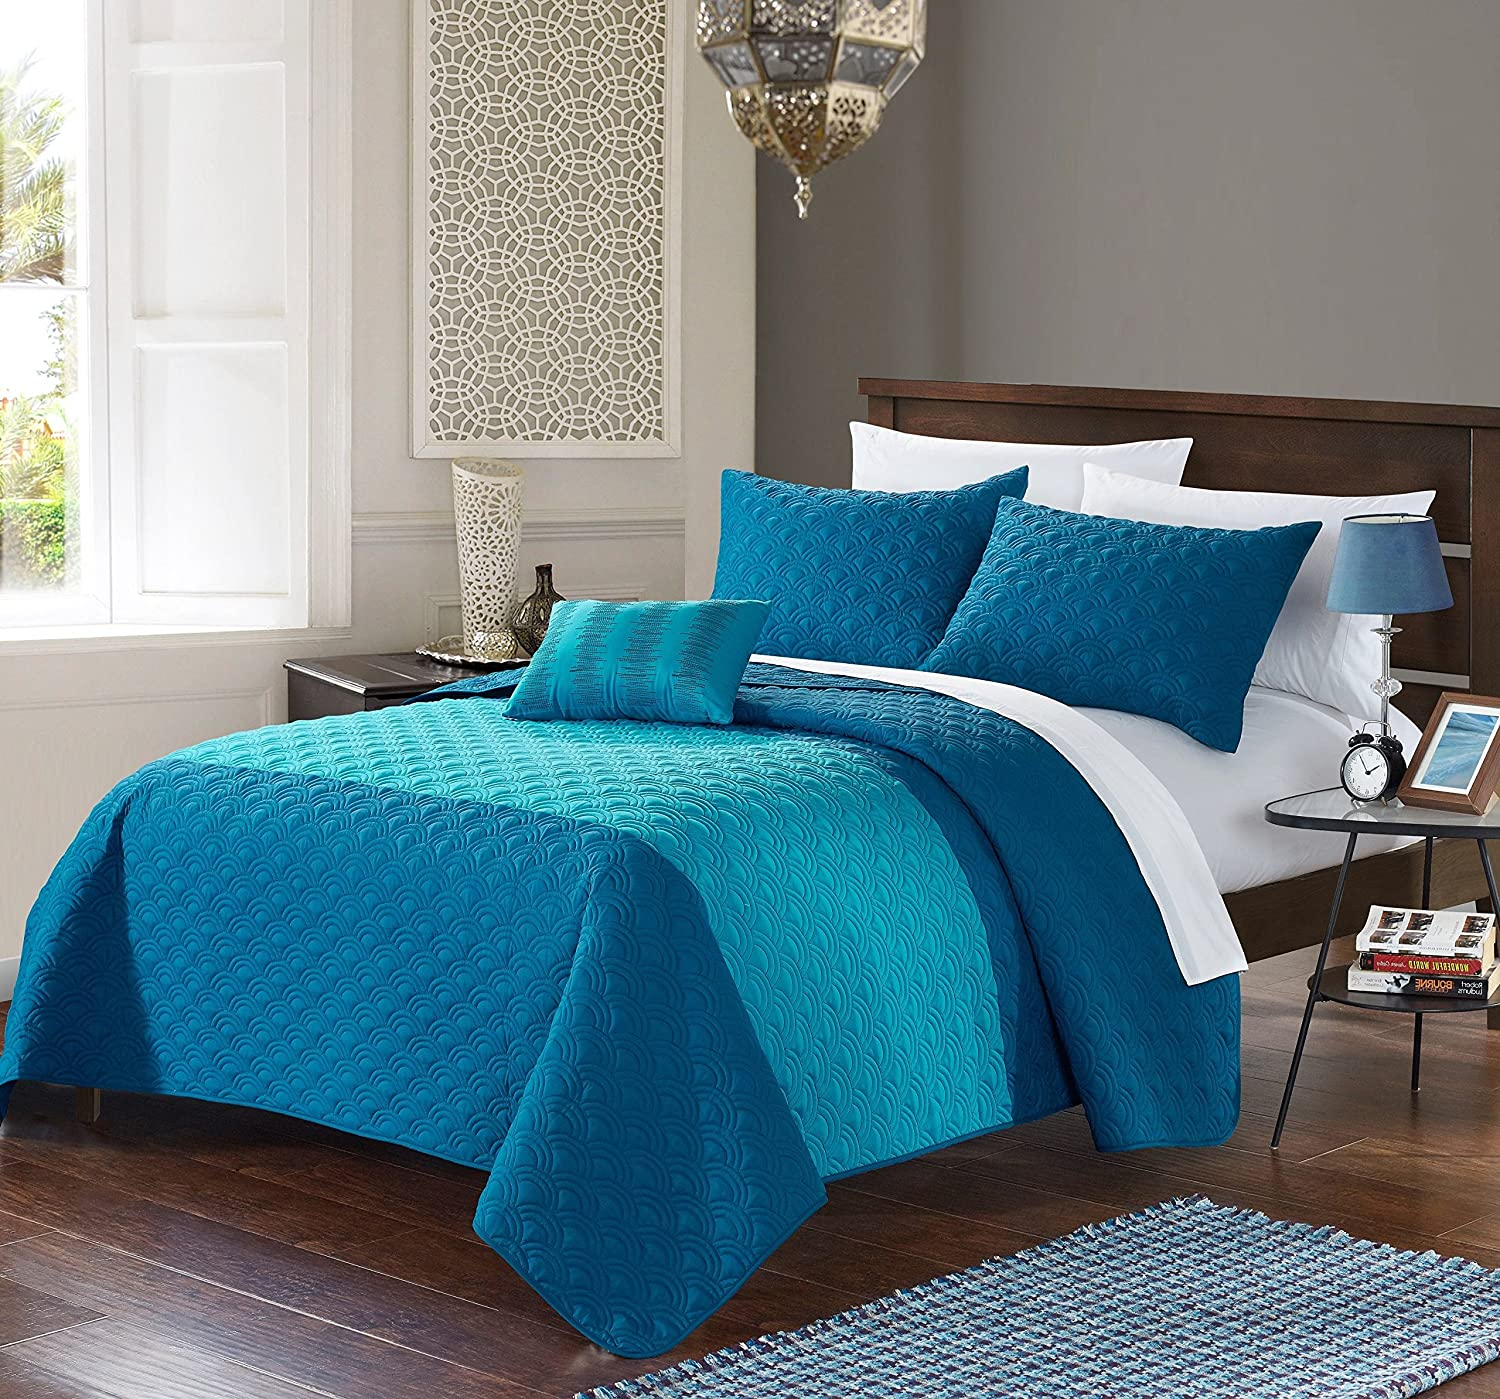 Chic Home 4 Piece Ellias Geometric Quilting Embroidery King Quilt Set Teal